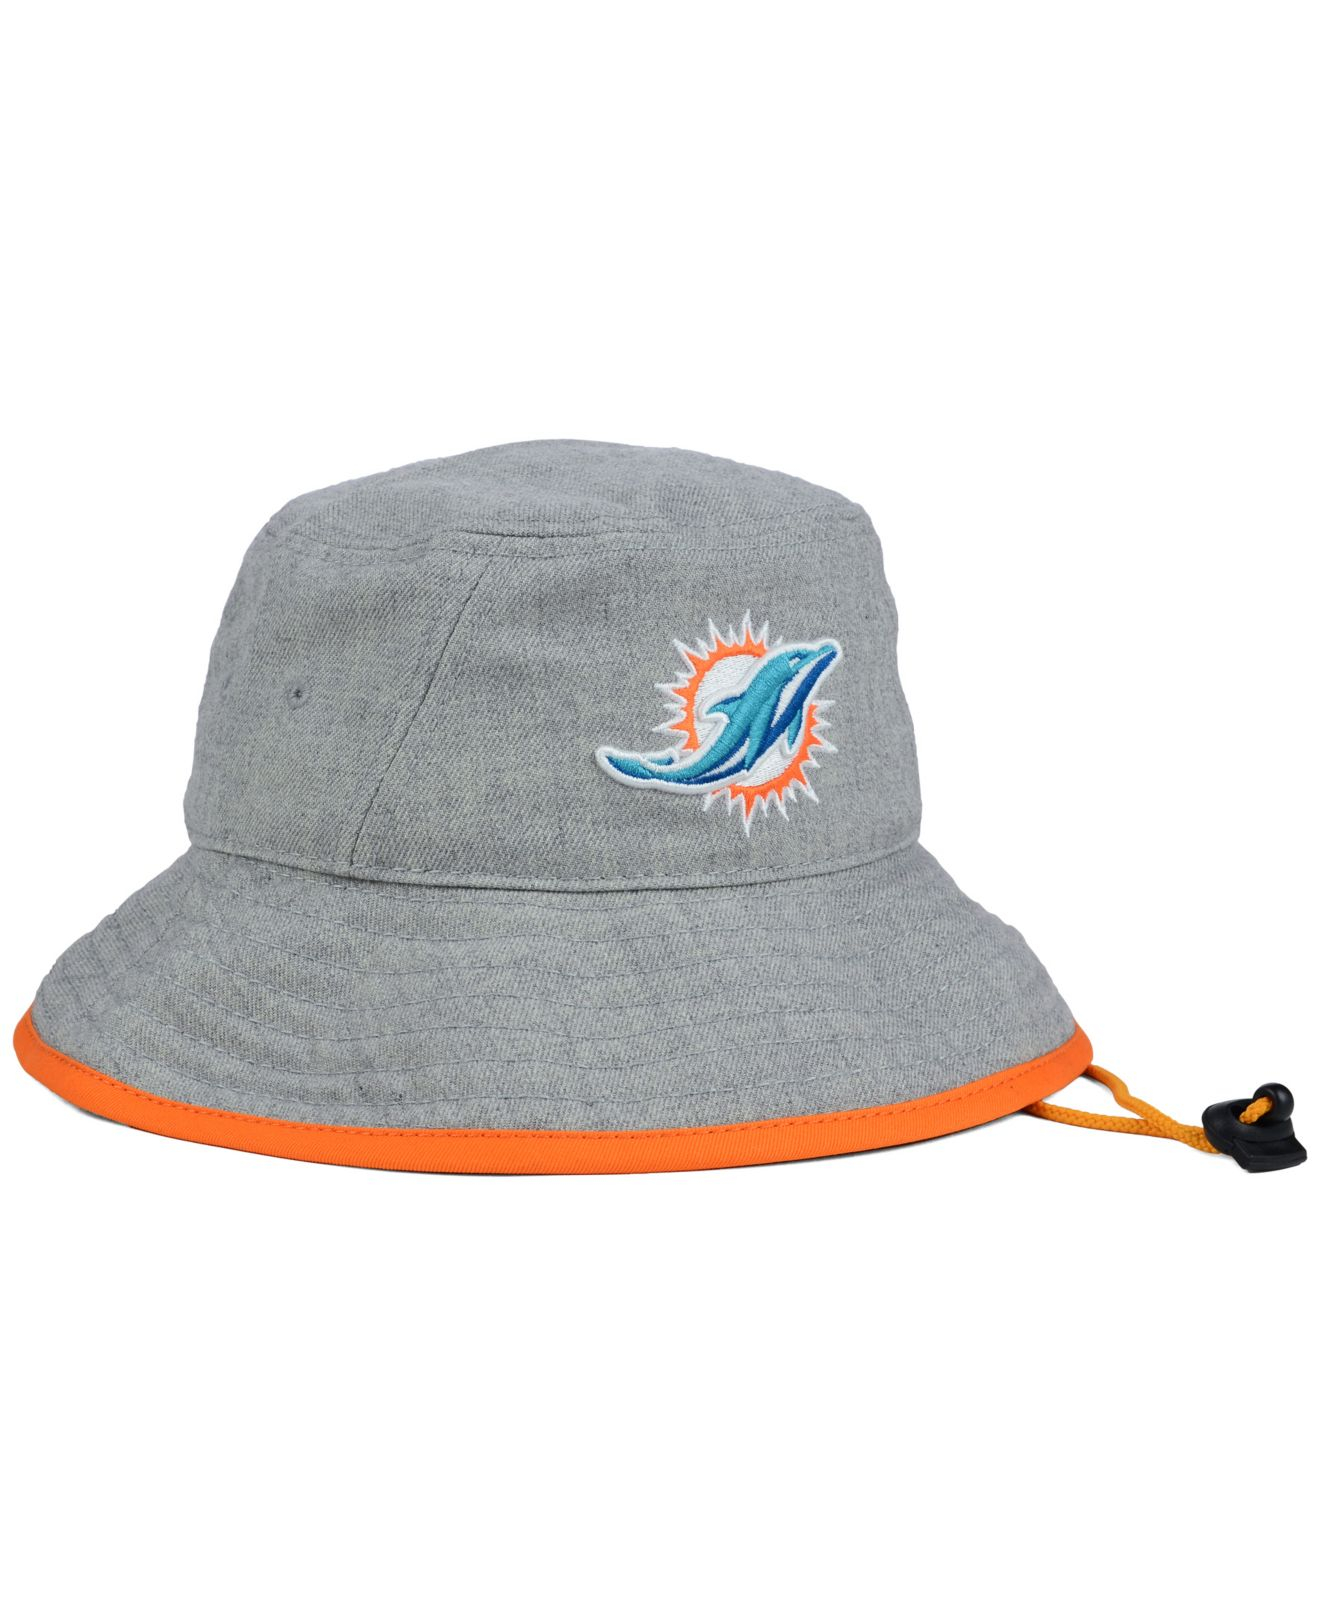 e384a2df8ee ... sweden lyst ktz miami dolphins nfl heather gray bucket hat in gray  a8c0d 05016 ...